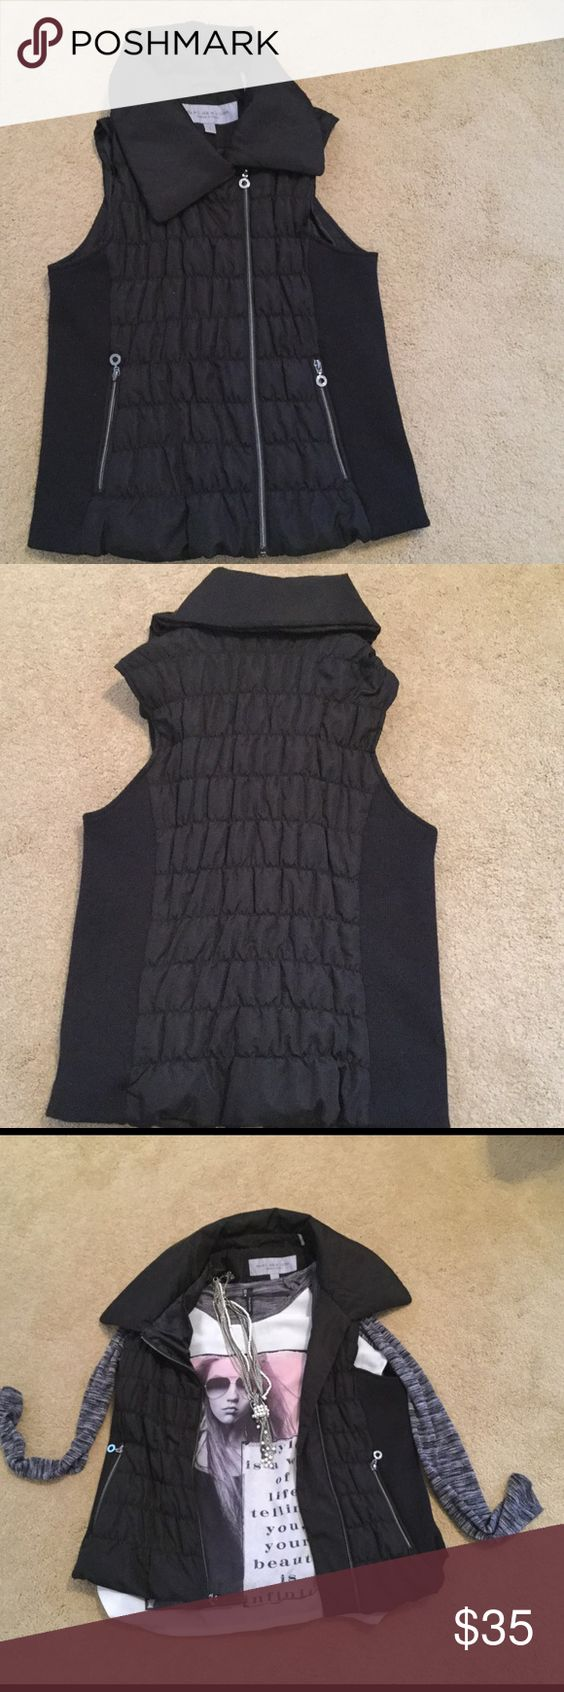 Brand new!!! Never worn,  puffer vest Black with silver zippers and detail. Very classy!!!! Marc New York Jackets & Coats Vests